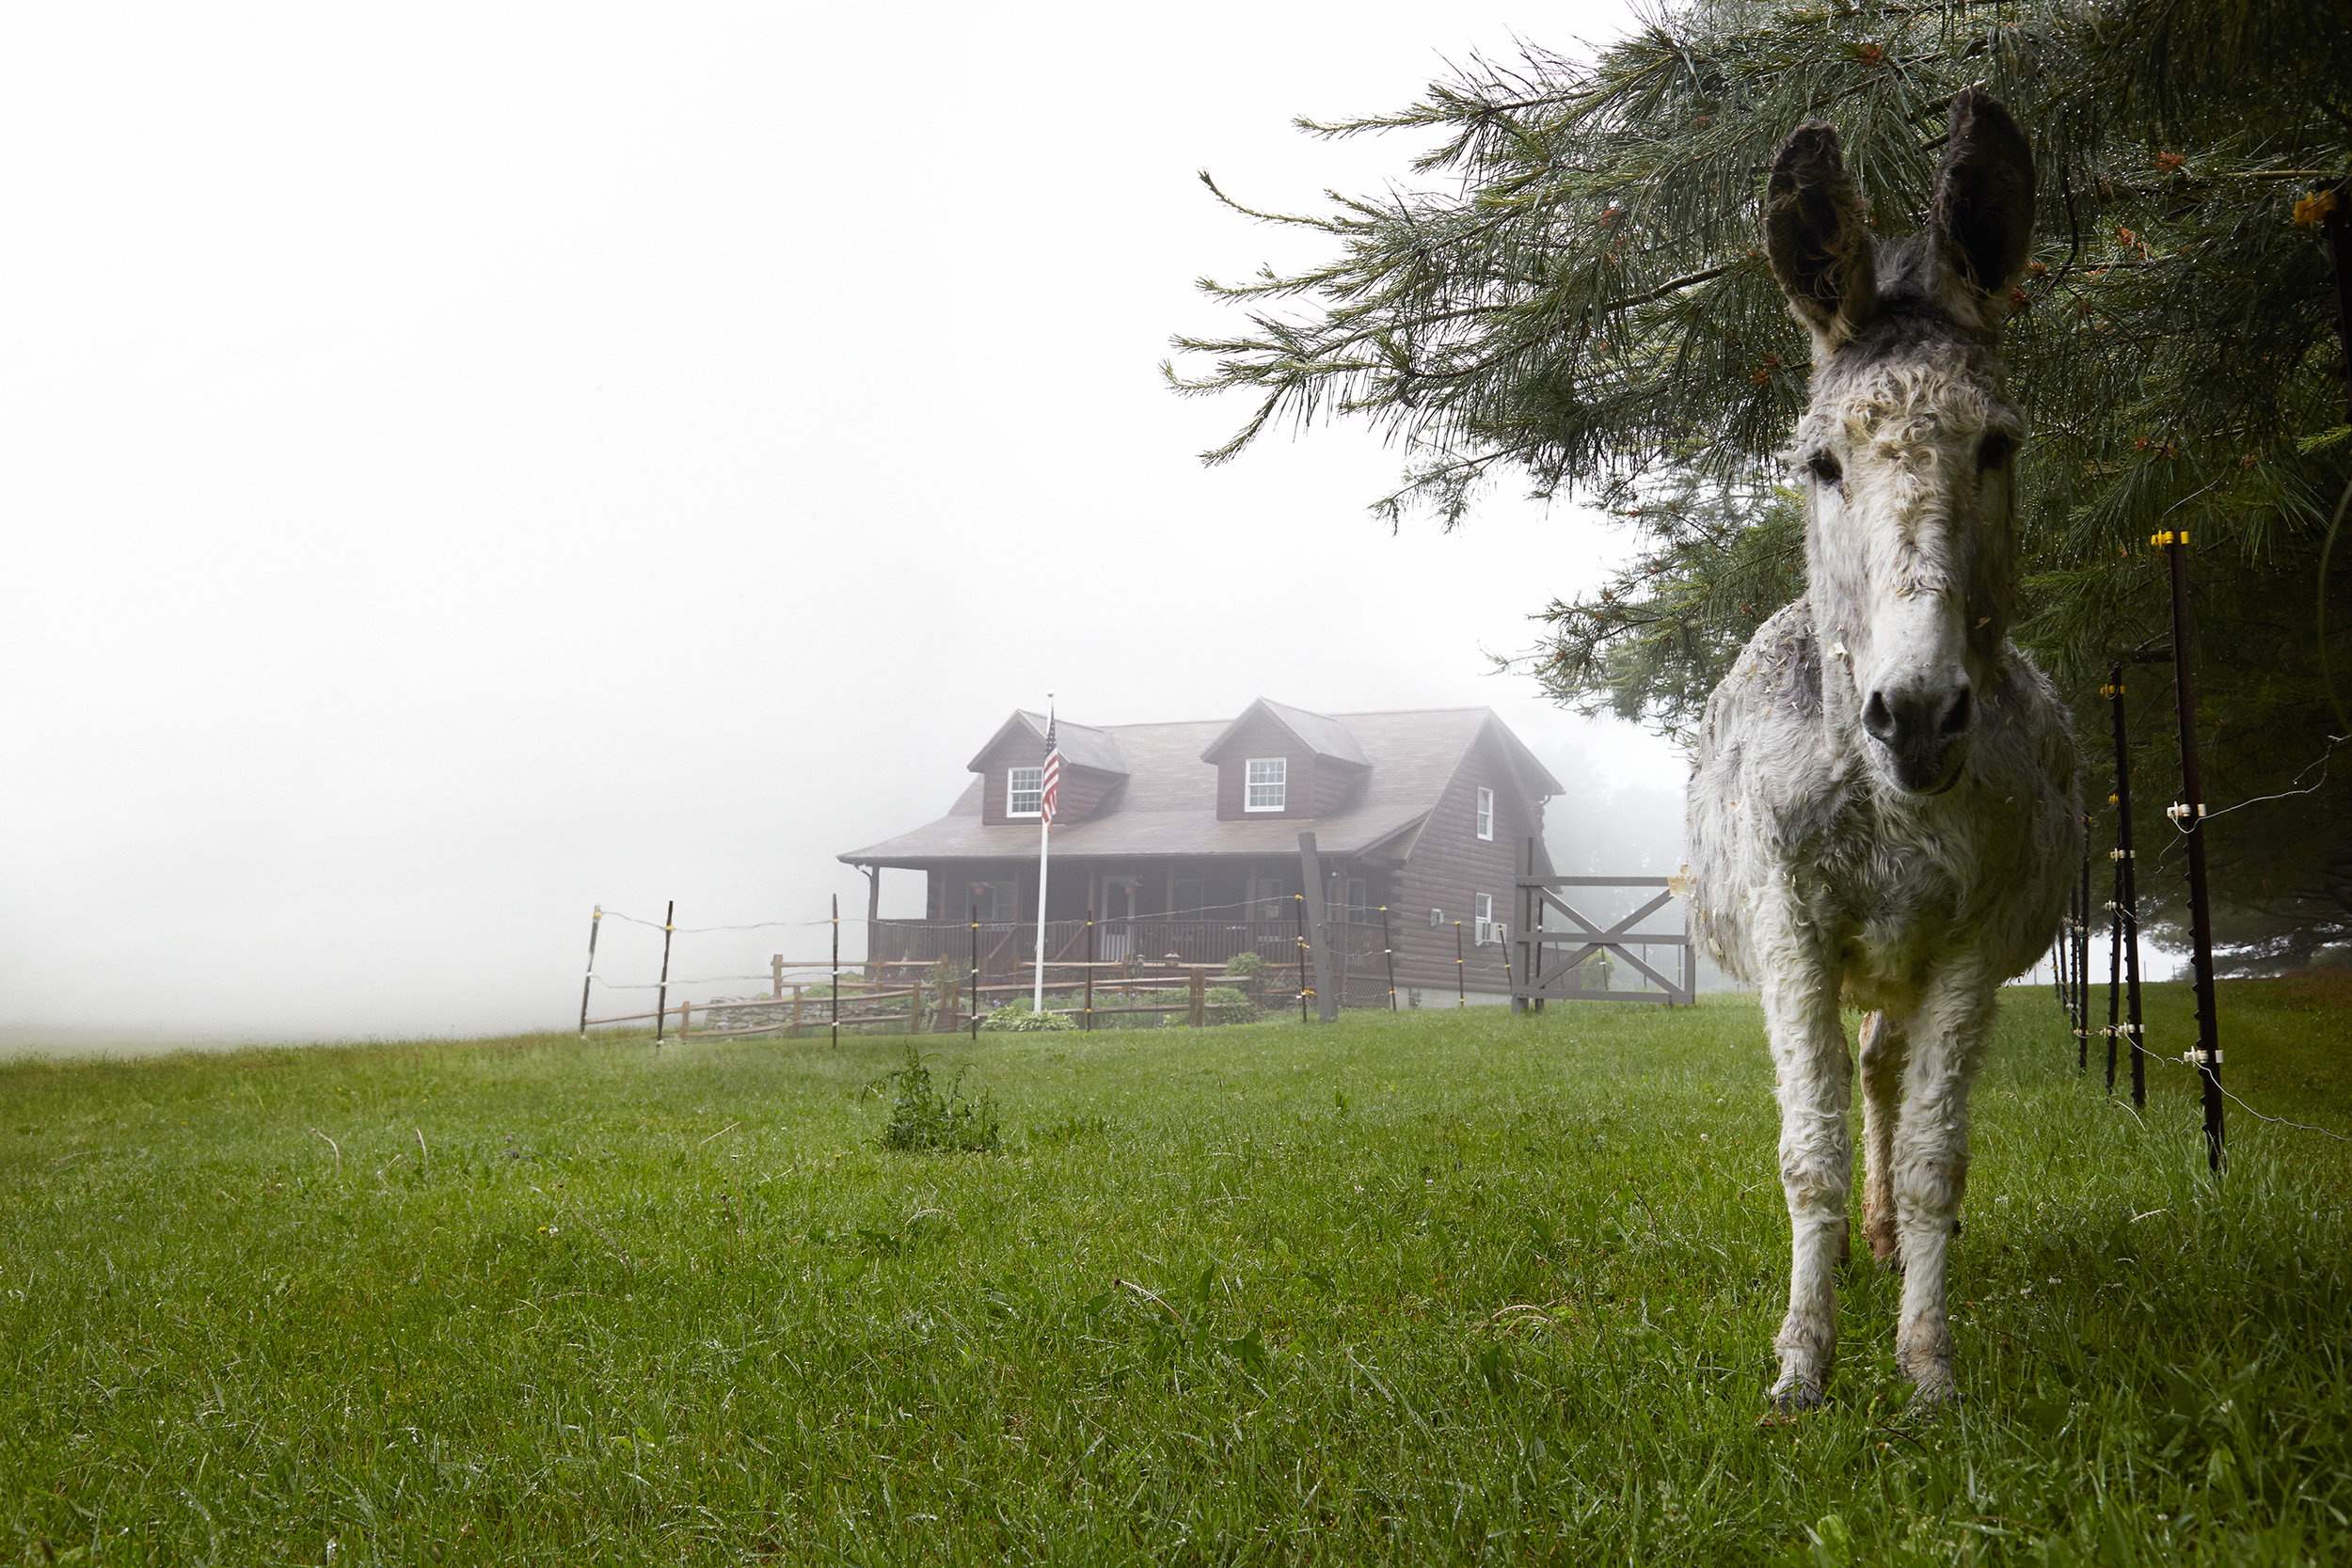 WHITE-DONKEY-ON-CONNECTICUT-FARM-LANDSCAPE-©-JONATHAN-R.-BECKERMAN-PHOTOGRAPHY-060516_29.jpg